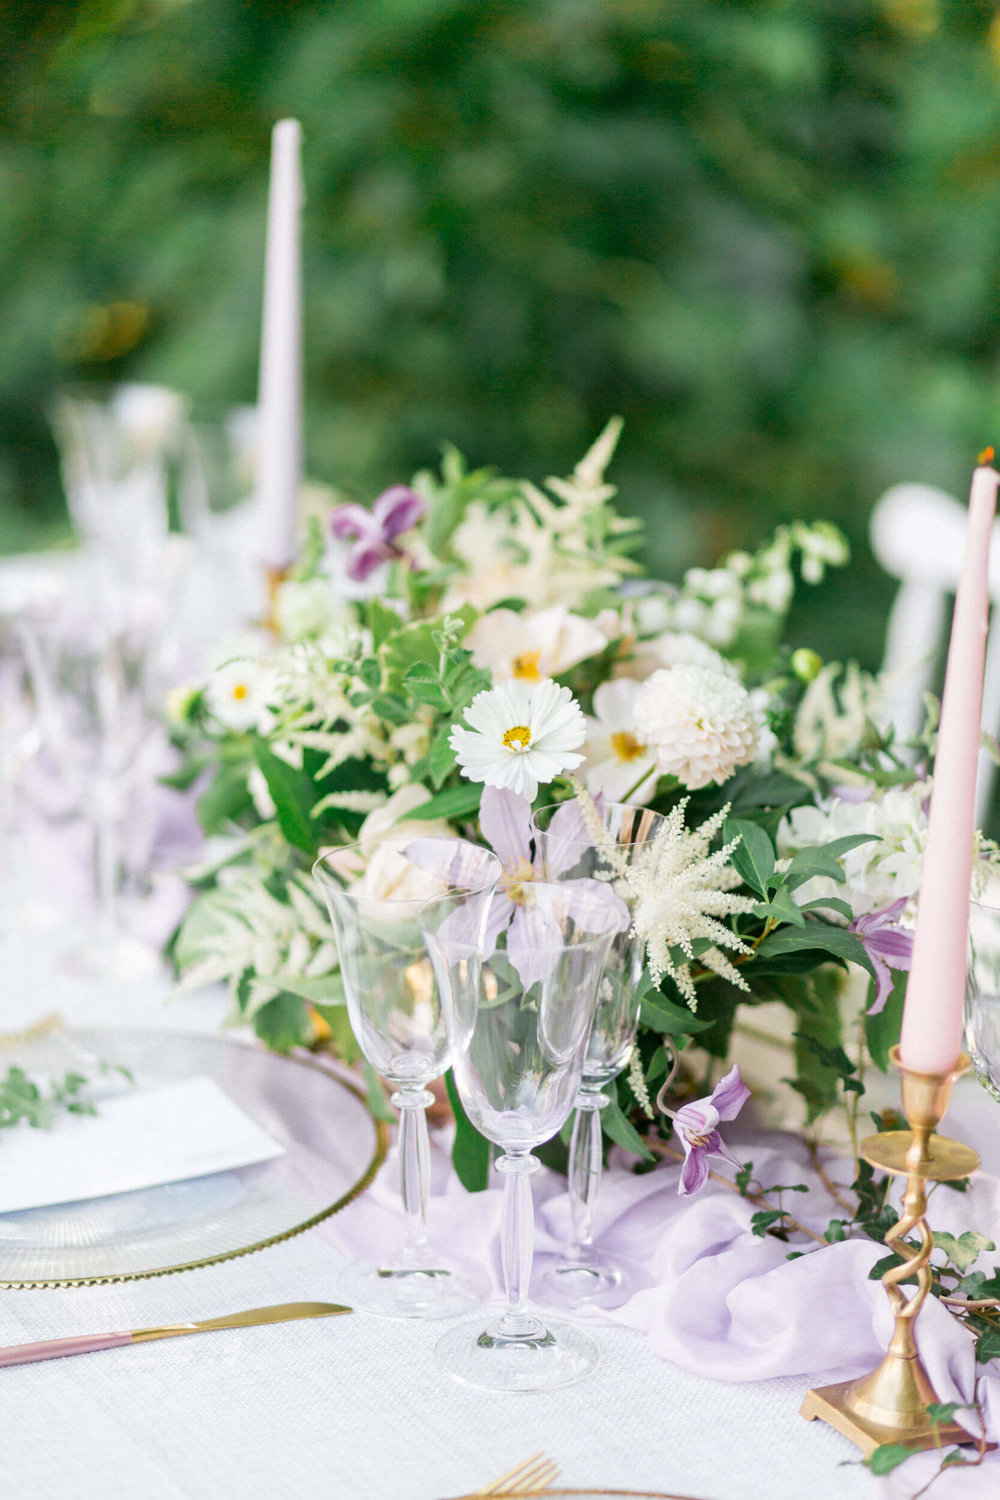 Table Centre - Lilac and Powder blue